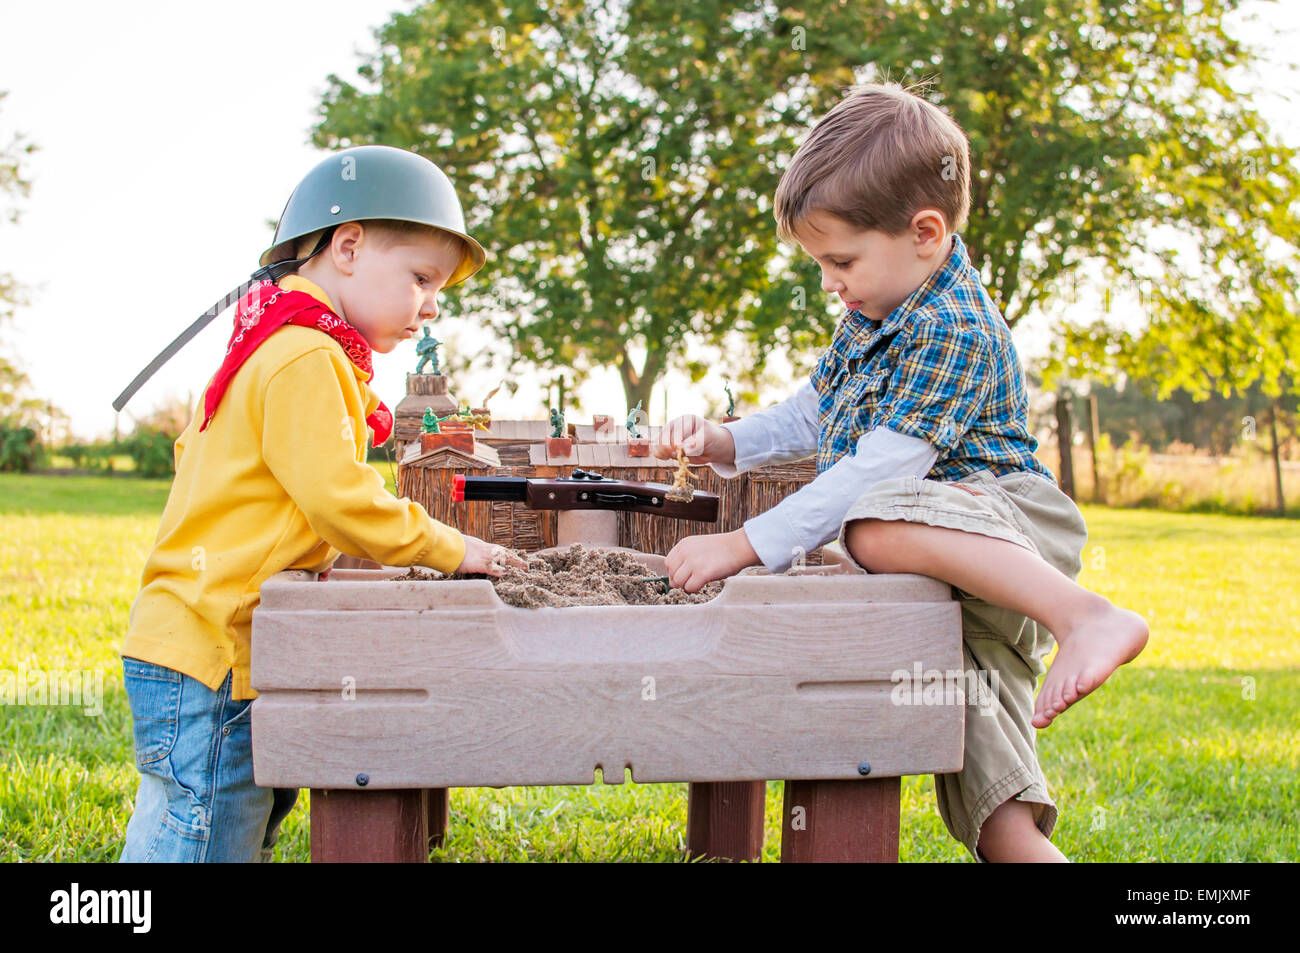 two boys playing fort in sandbox - Stock Image